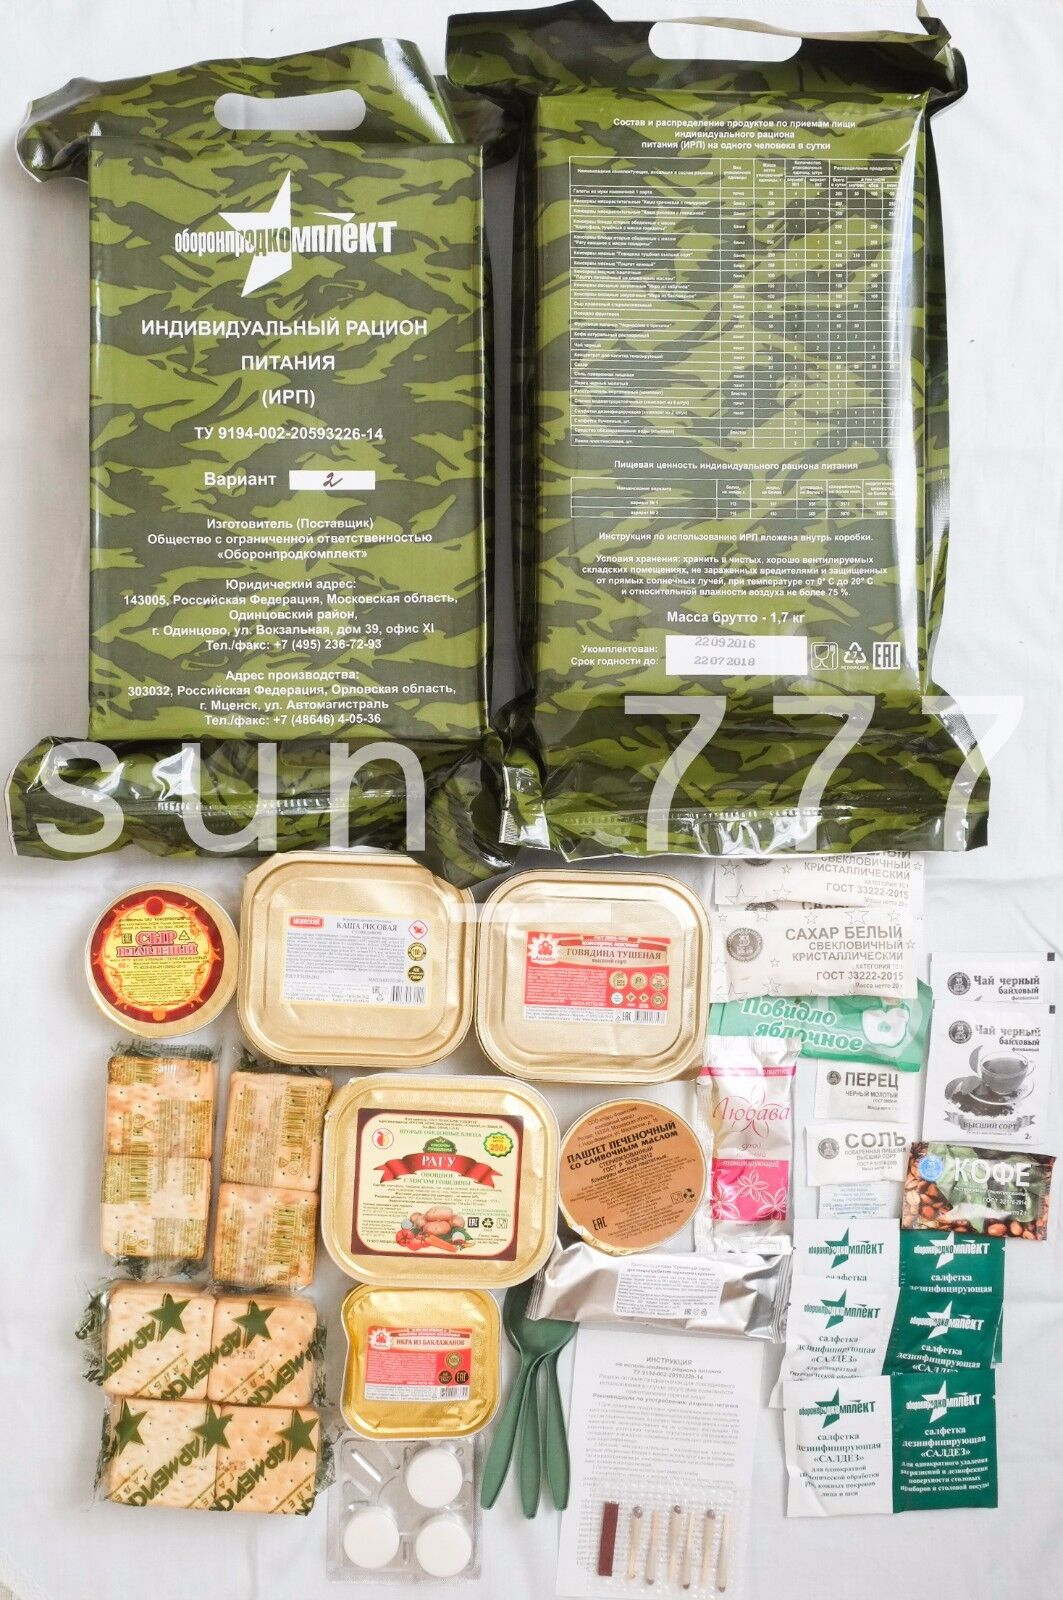 DAILY FOOD RATION PACK 1,9kg 1 x Kazakhstan Army MILITARY MRE Emergency Food